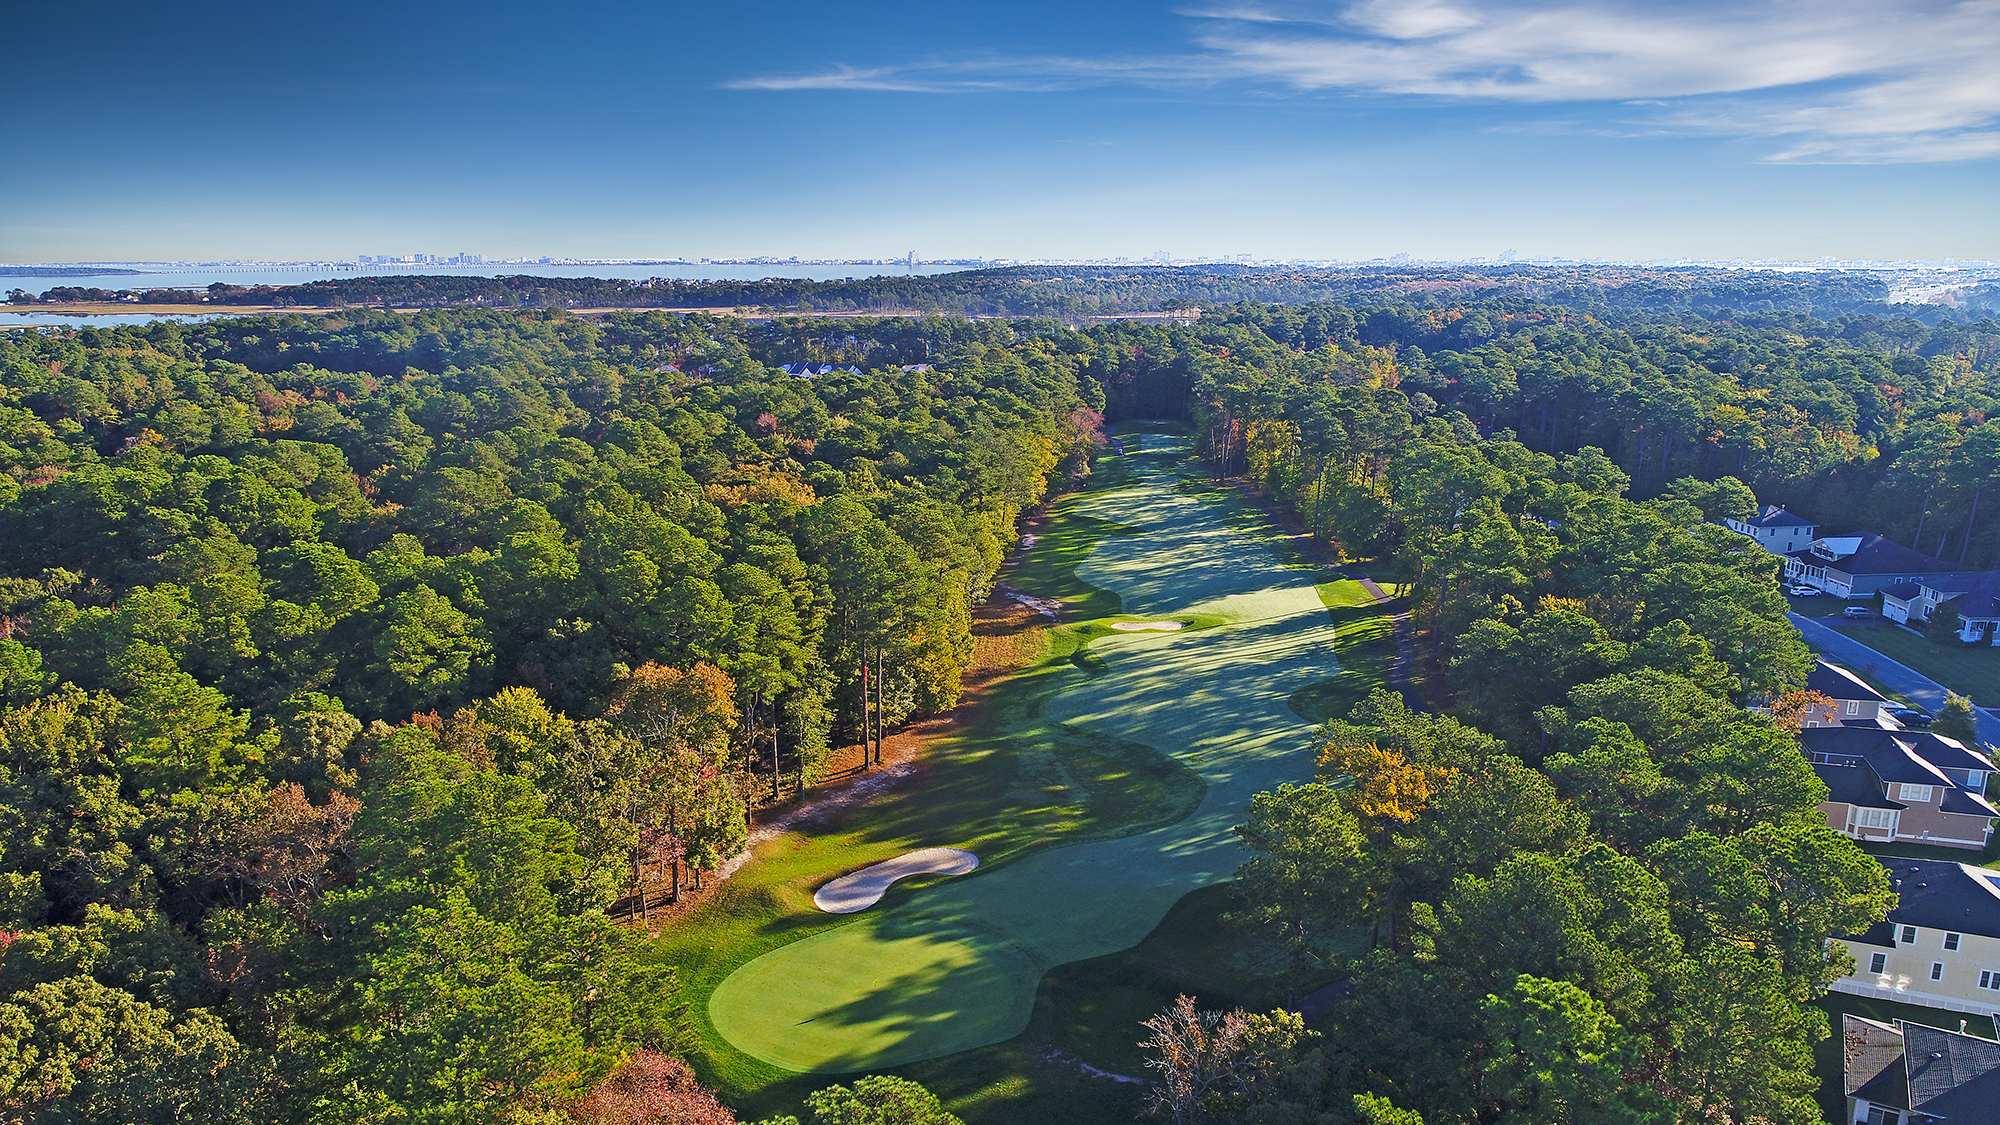 Aerial view of golf course in the middle of trees